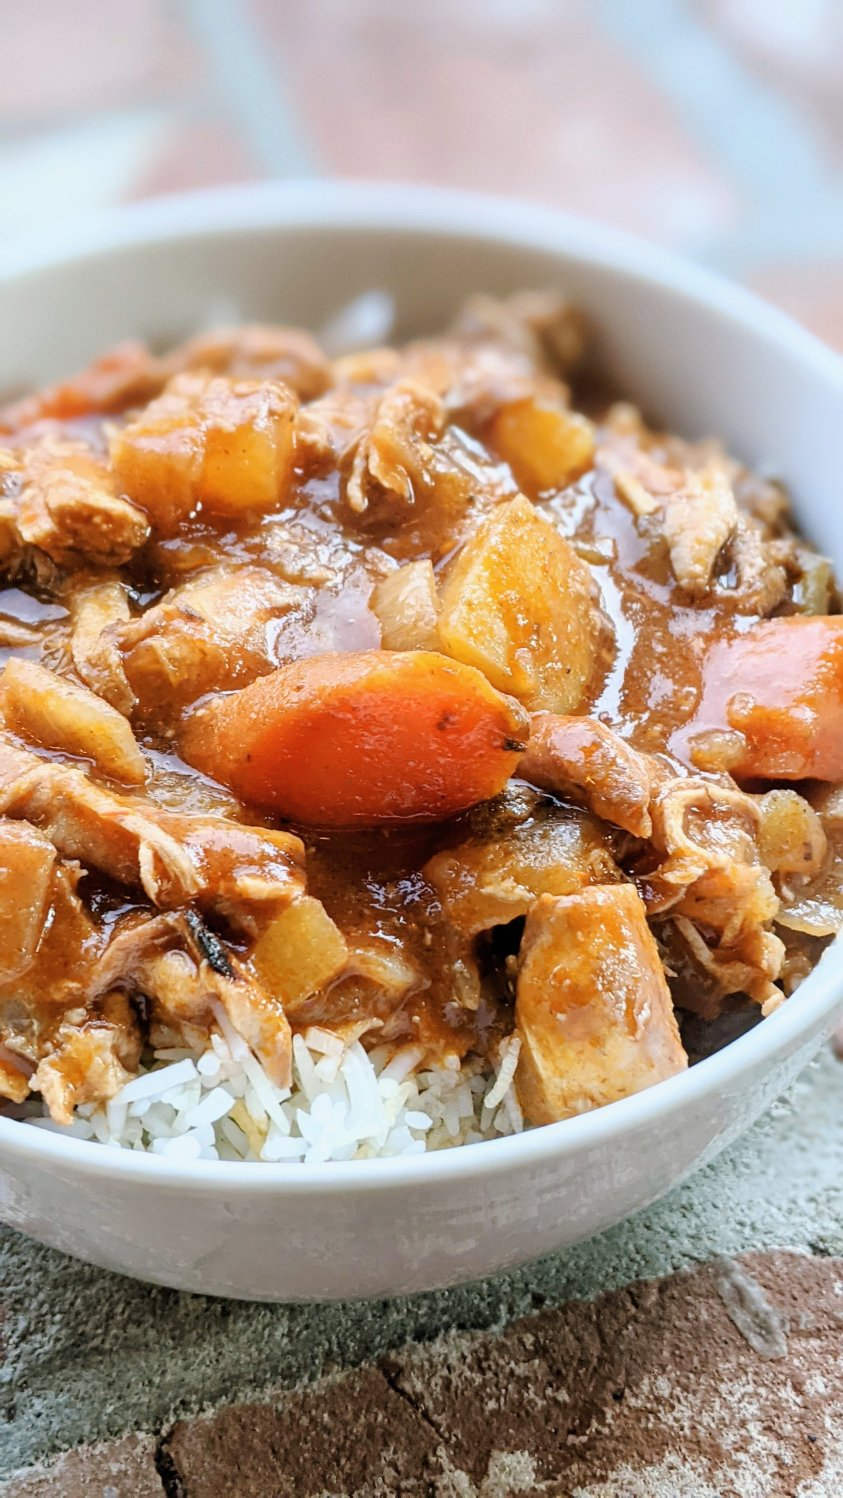 red wine chicken stew recipe with rice french coz au vin recipe easy homemade dutch oven coquette chicken recipe homemade simmered chicken stew in red wines from france